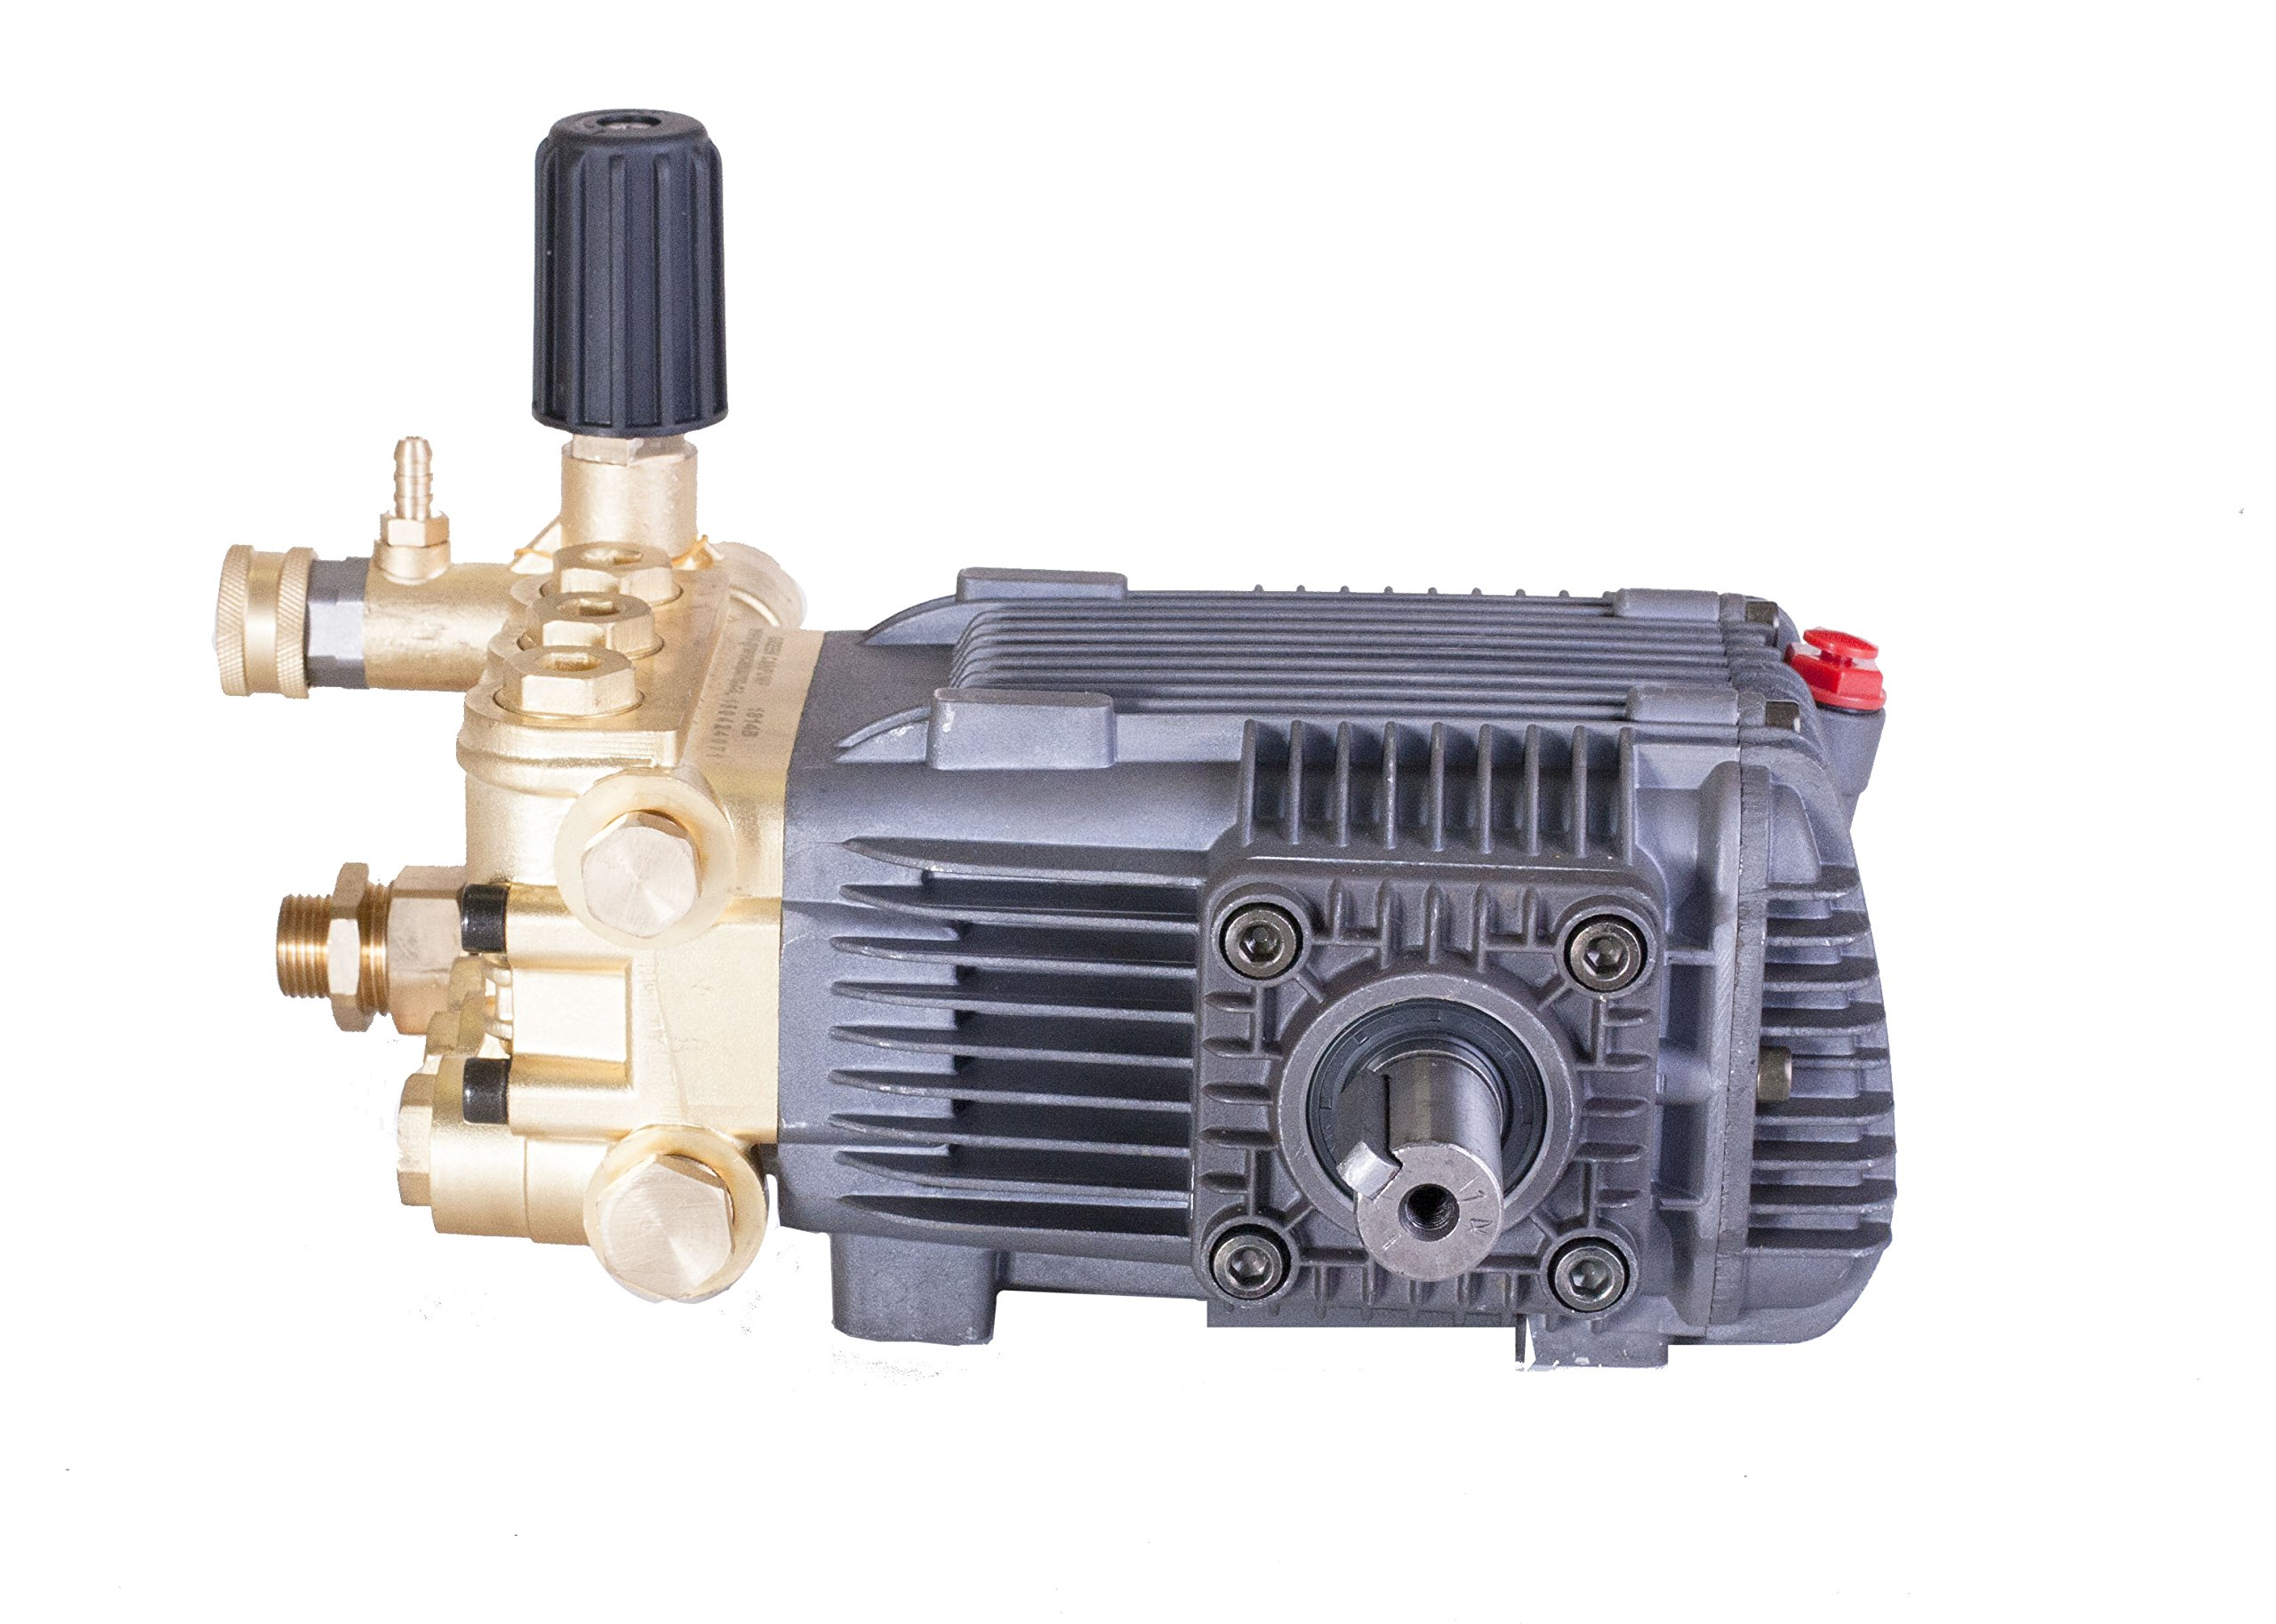 Pressure Power Washer Replacement Pump Solid Shaft 24 mm Belt Drive 3600 PSI by Canpump (Image #3)